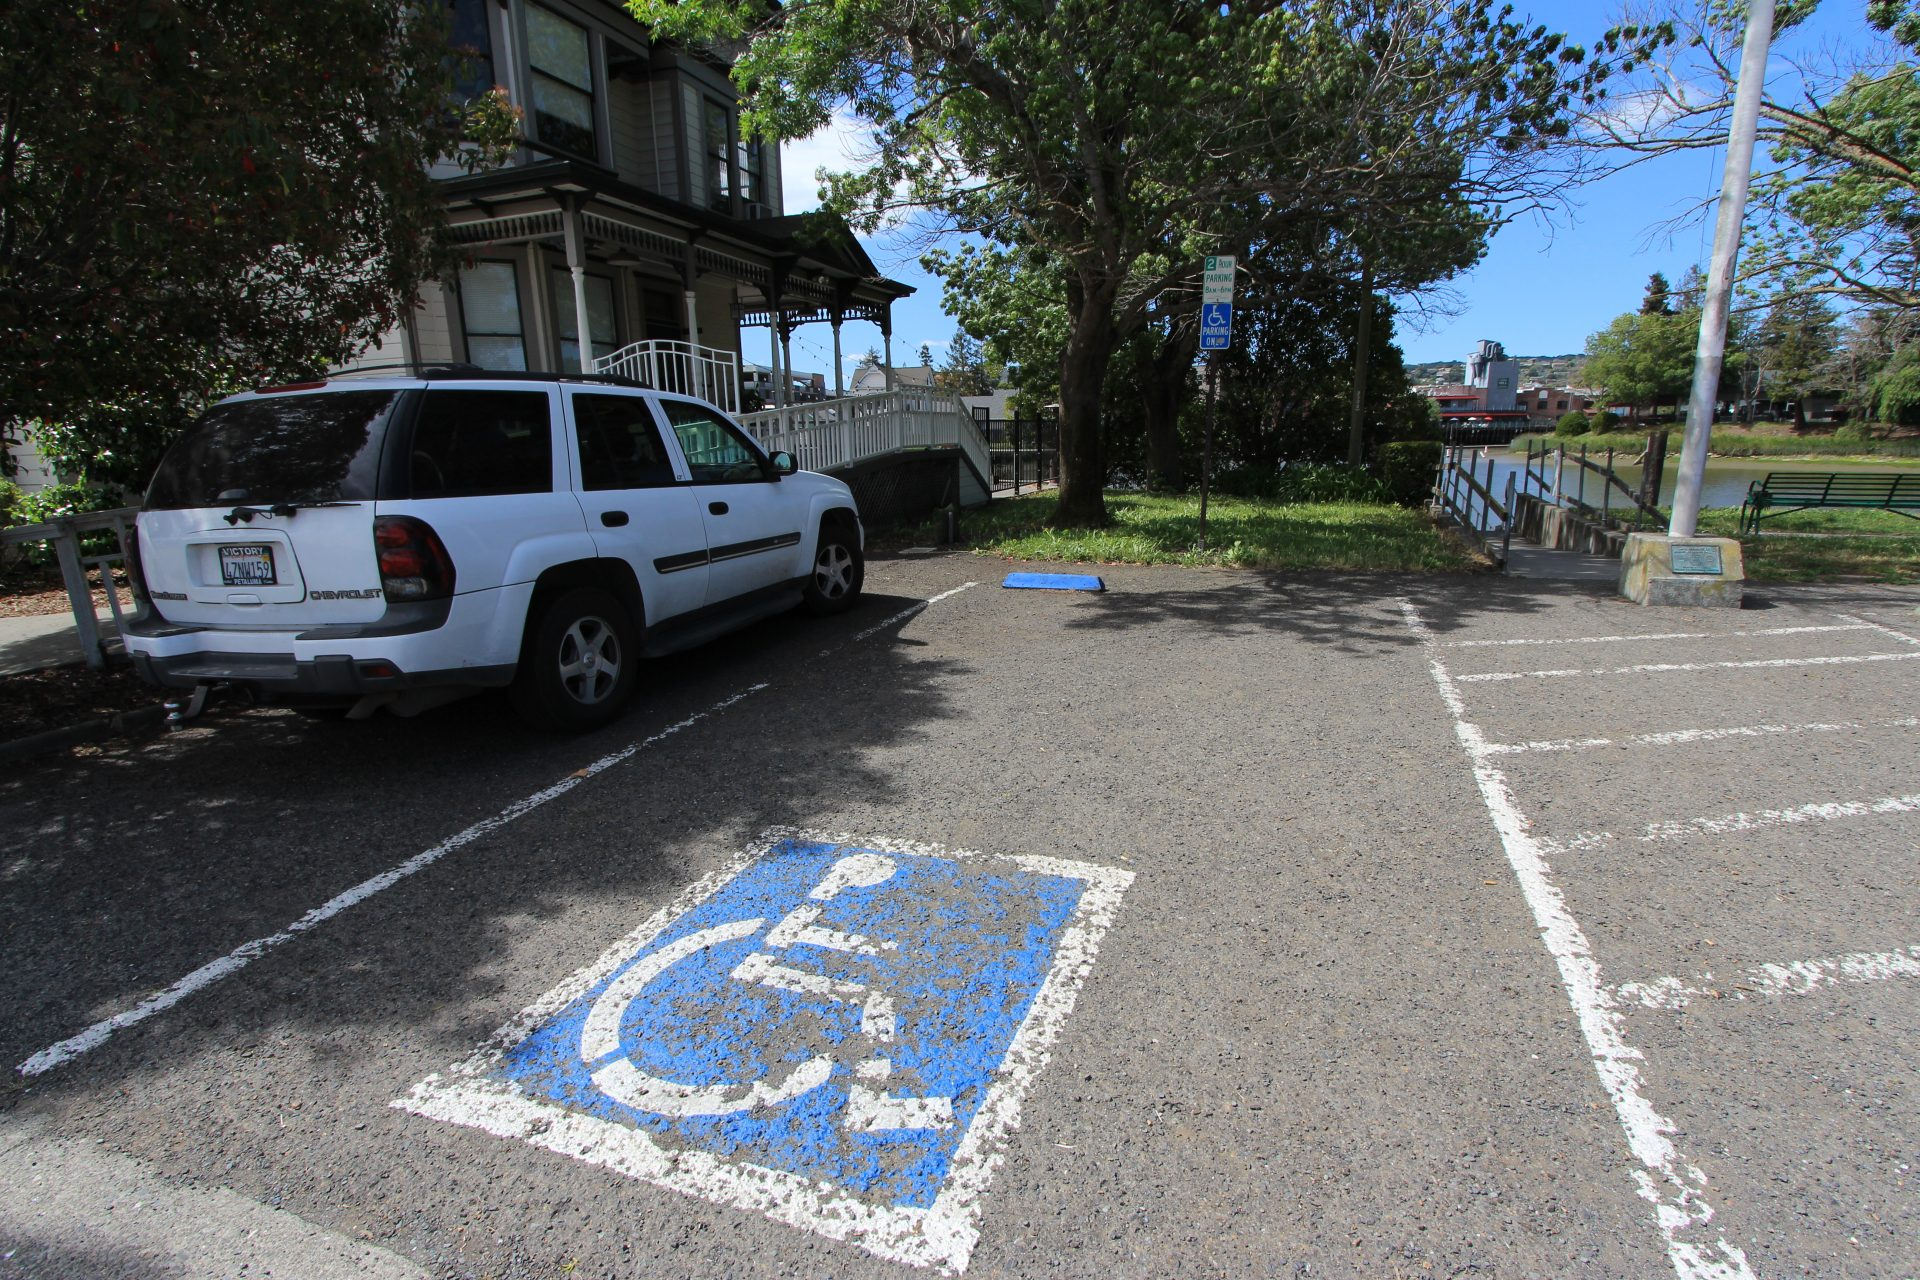 Handicap accessible parking spot, with white SUV on left